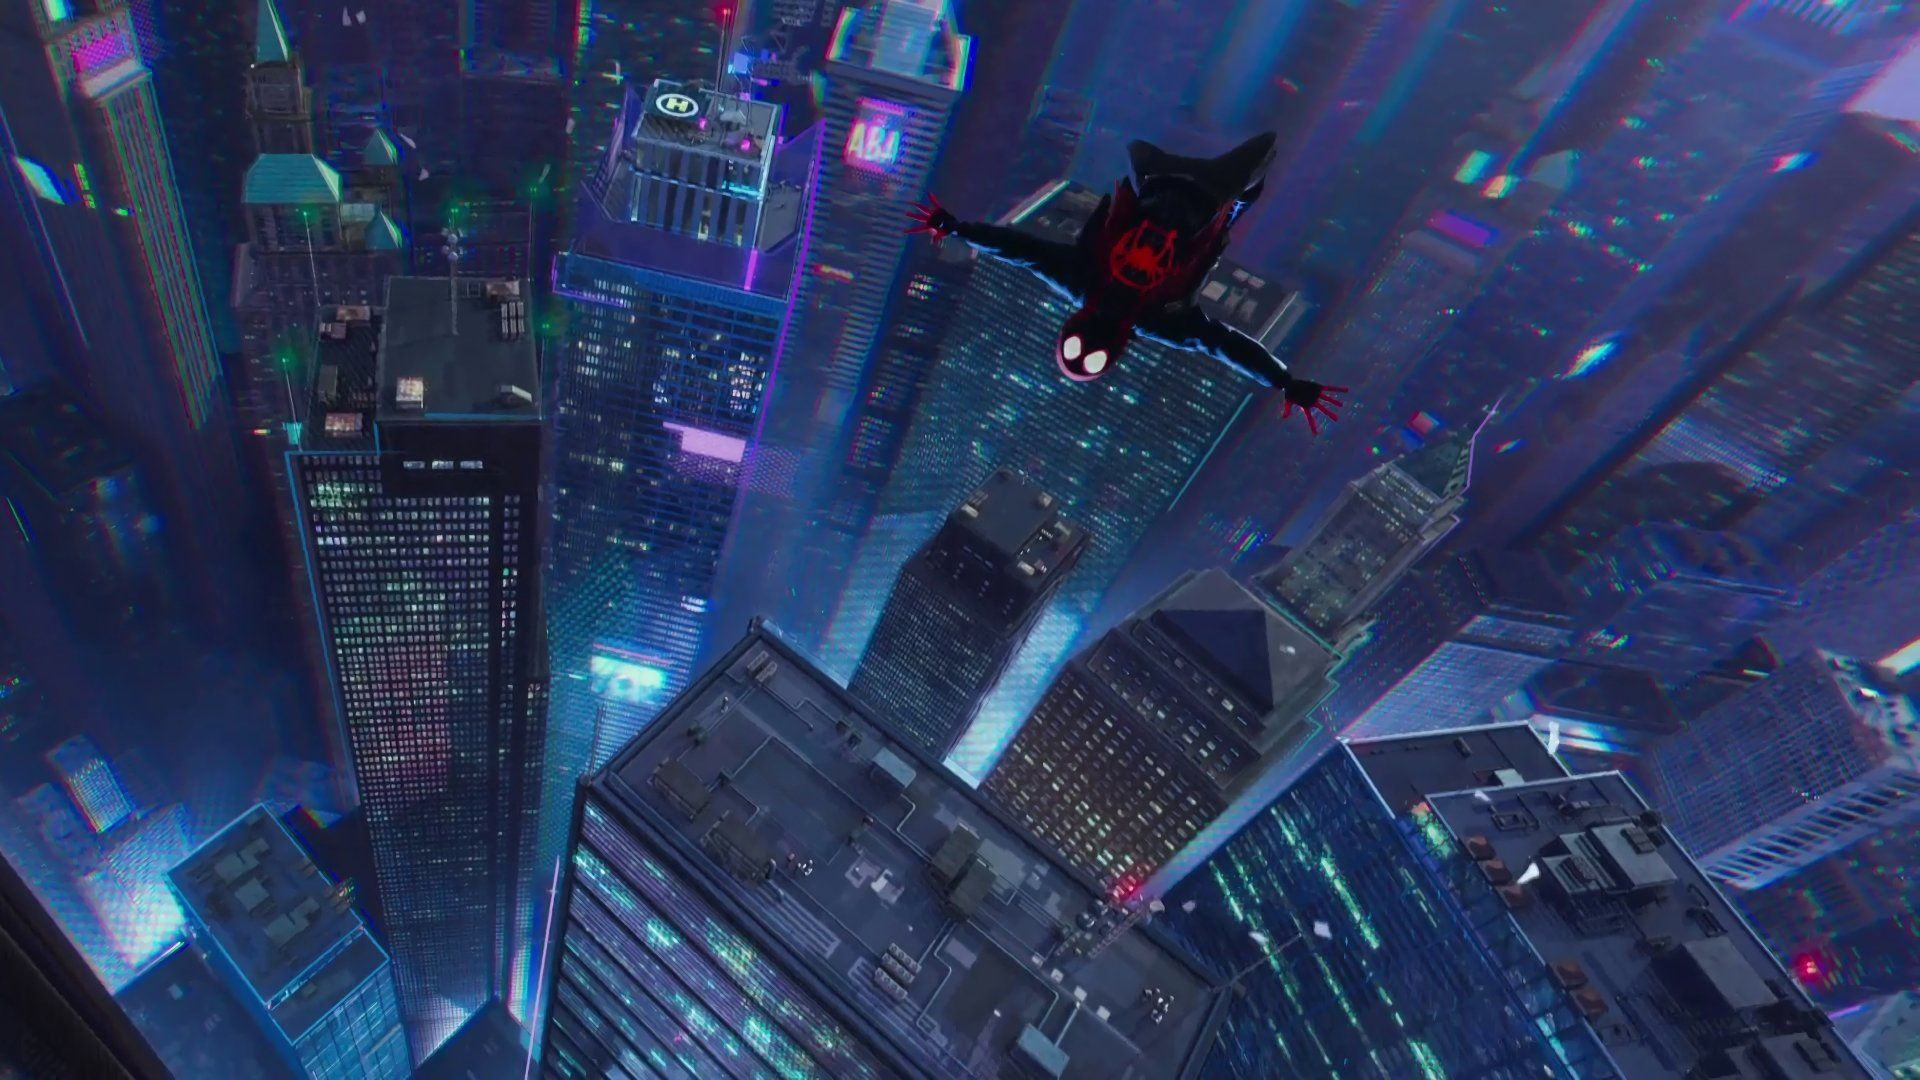 Spider Verse Wallpapers Top Free Spider Verse Backgrounds